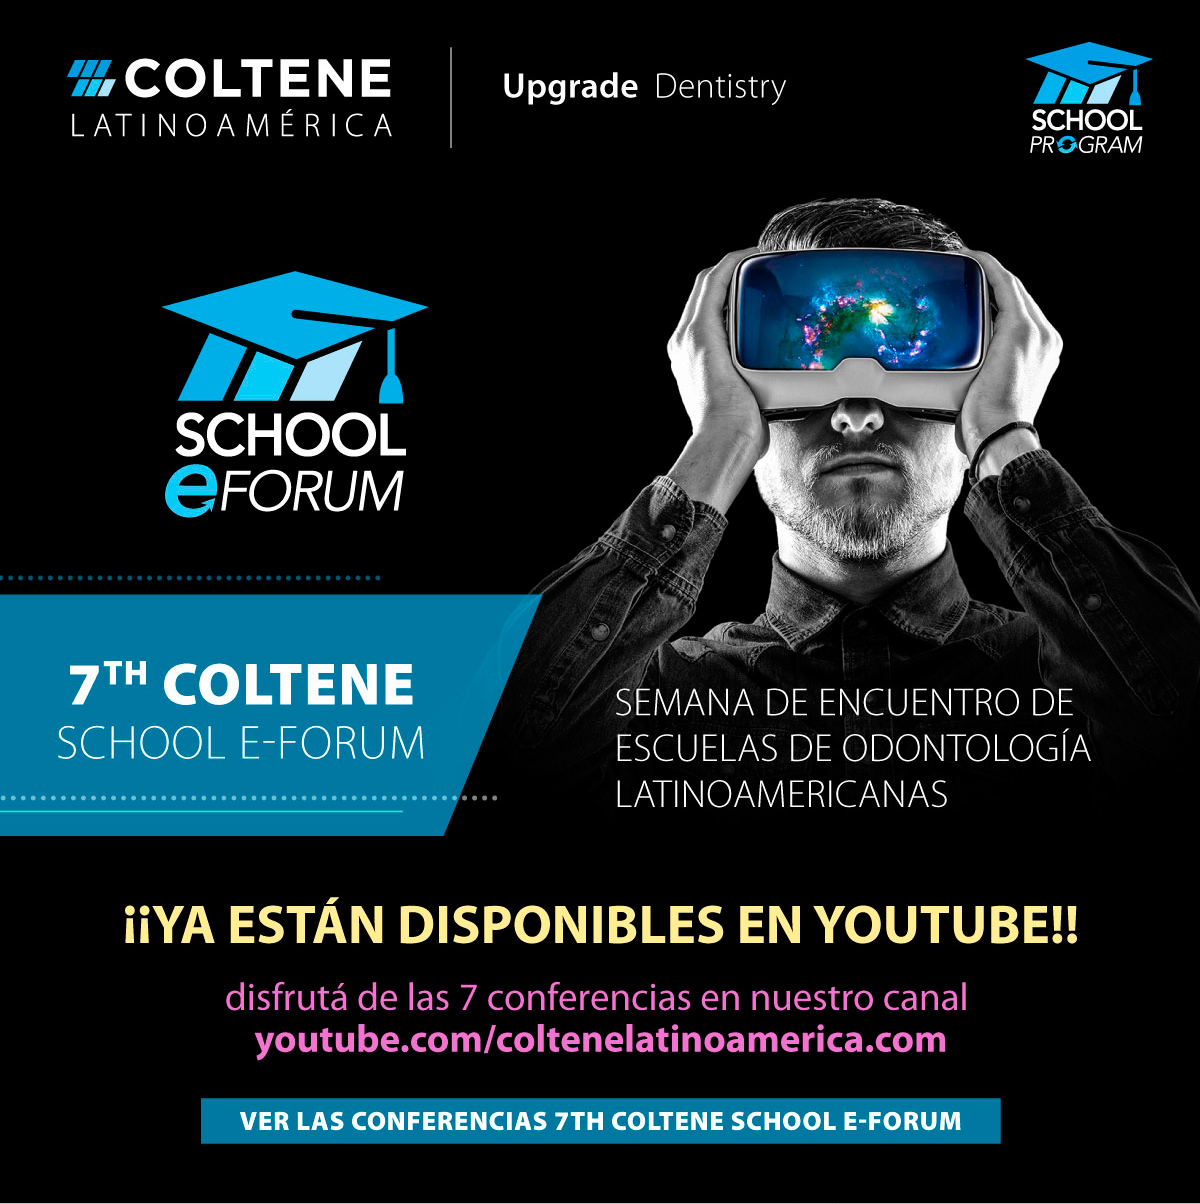 7th Coltene Scholl E-Forum EN YOUTUBE